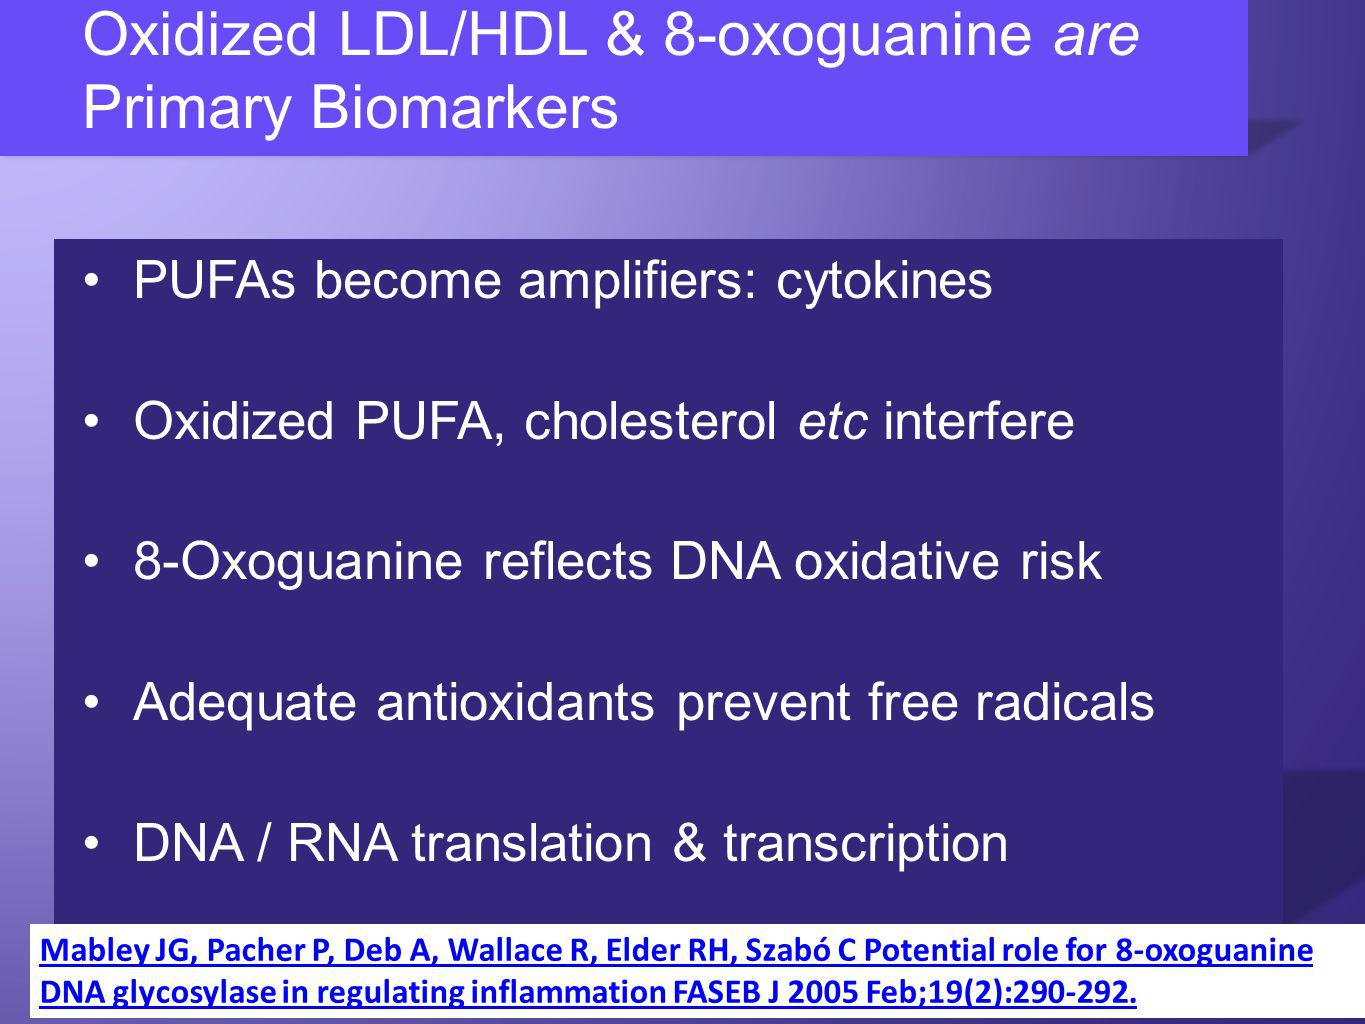 Oxidized LDL/HDL & 8-oxoguanine are Primary Biomarkers PUFAs become amplifiers: cytokines Oxidized PUFA, cholesterol etc interfere 8-Oxoguanine reflects DNA oxidative risk Adequate antioxidants prevent free radicals DNA / RNA translation & transcription Mabley JG, Pacher P, Deb A, Wallace R, Elder RH, Szabó C Potential role for 8-oxoguanine DNA glycosylase in regulating inflammation FASEB J 2005 Feb;19(2):290-292.